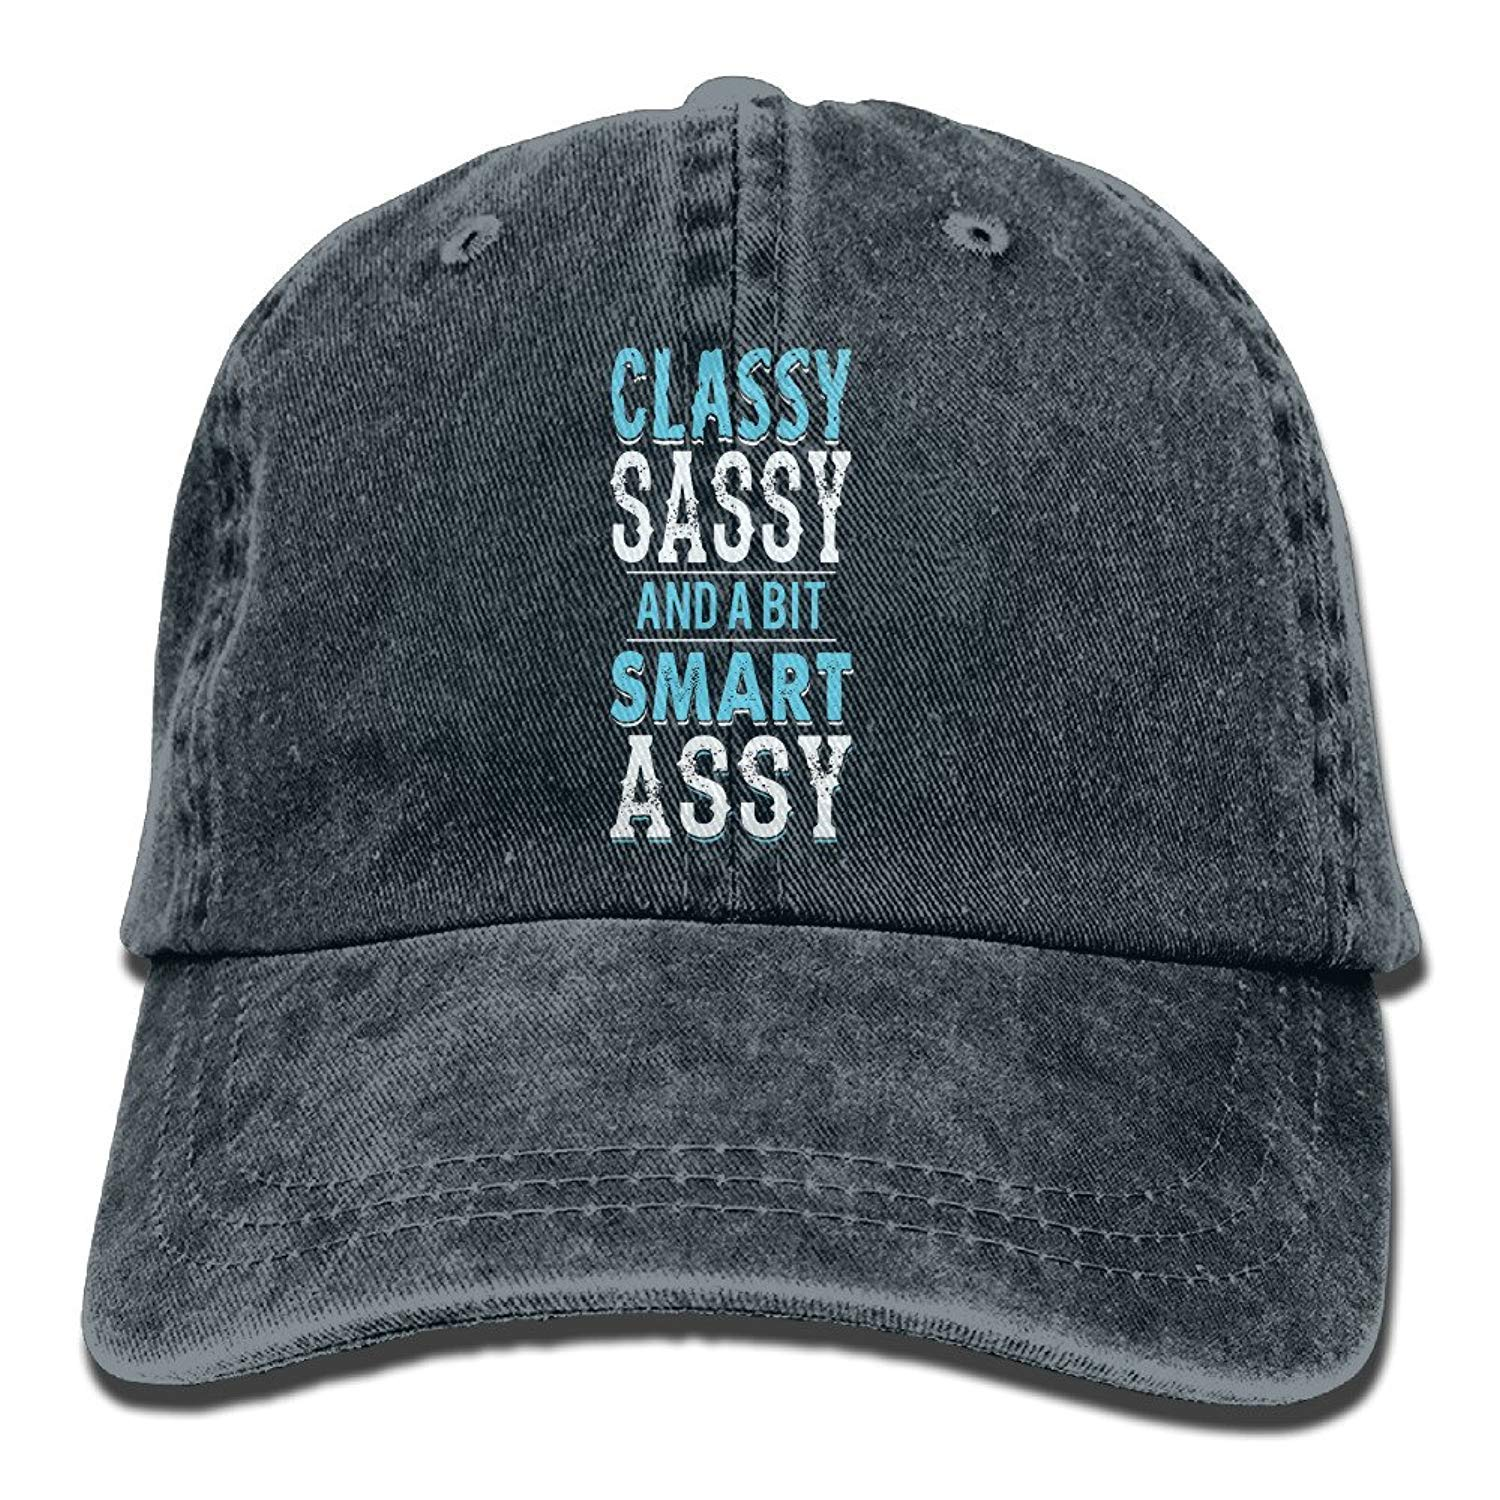 JTRVW Cowboy Hats Classy Sassy and A Bit Smart Assy Adult Individuality Cowboy Hat